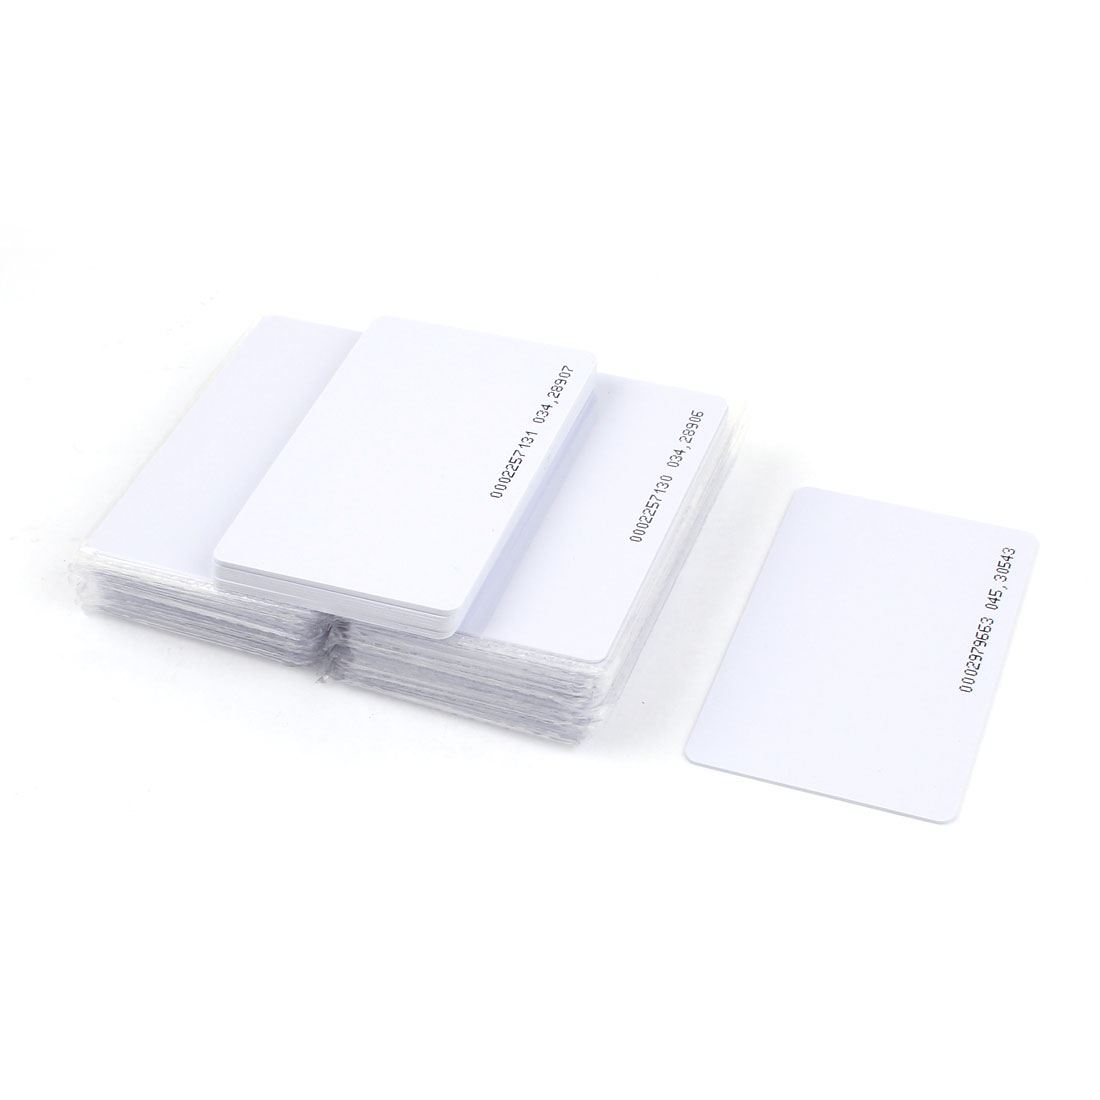 50pcs EM4100 Contactless 125kHz RFID Proximity ID Smart Entry Access Card